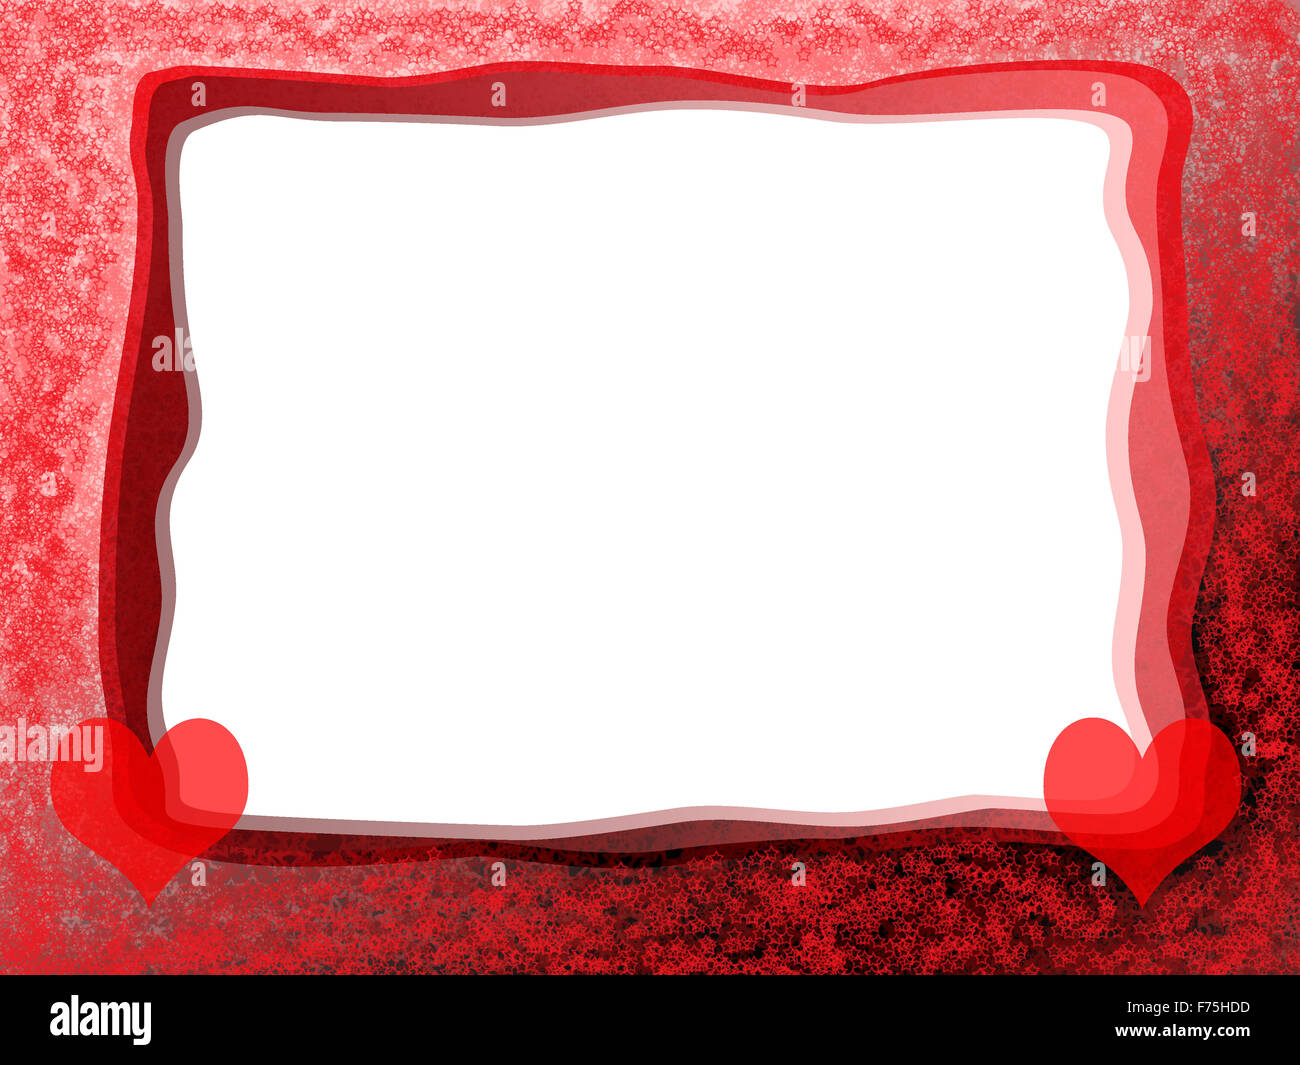 Two Hearts Blood Stock Photos & Two Hearts Blood Stock Images - Alamy